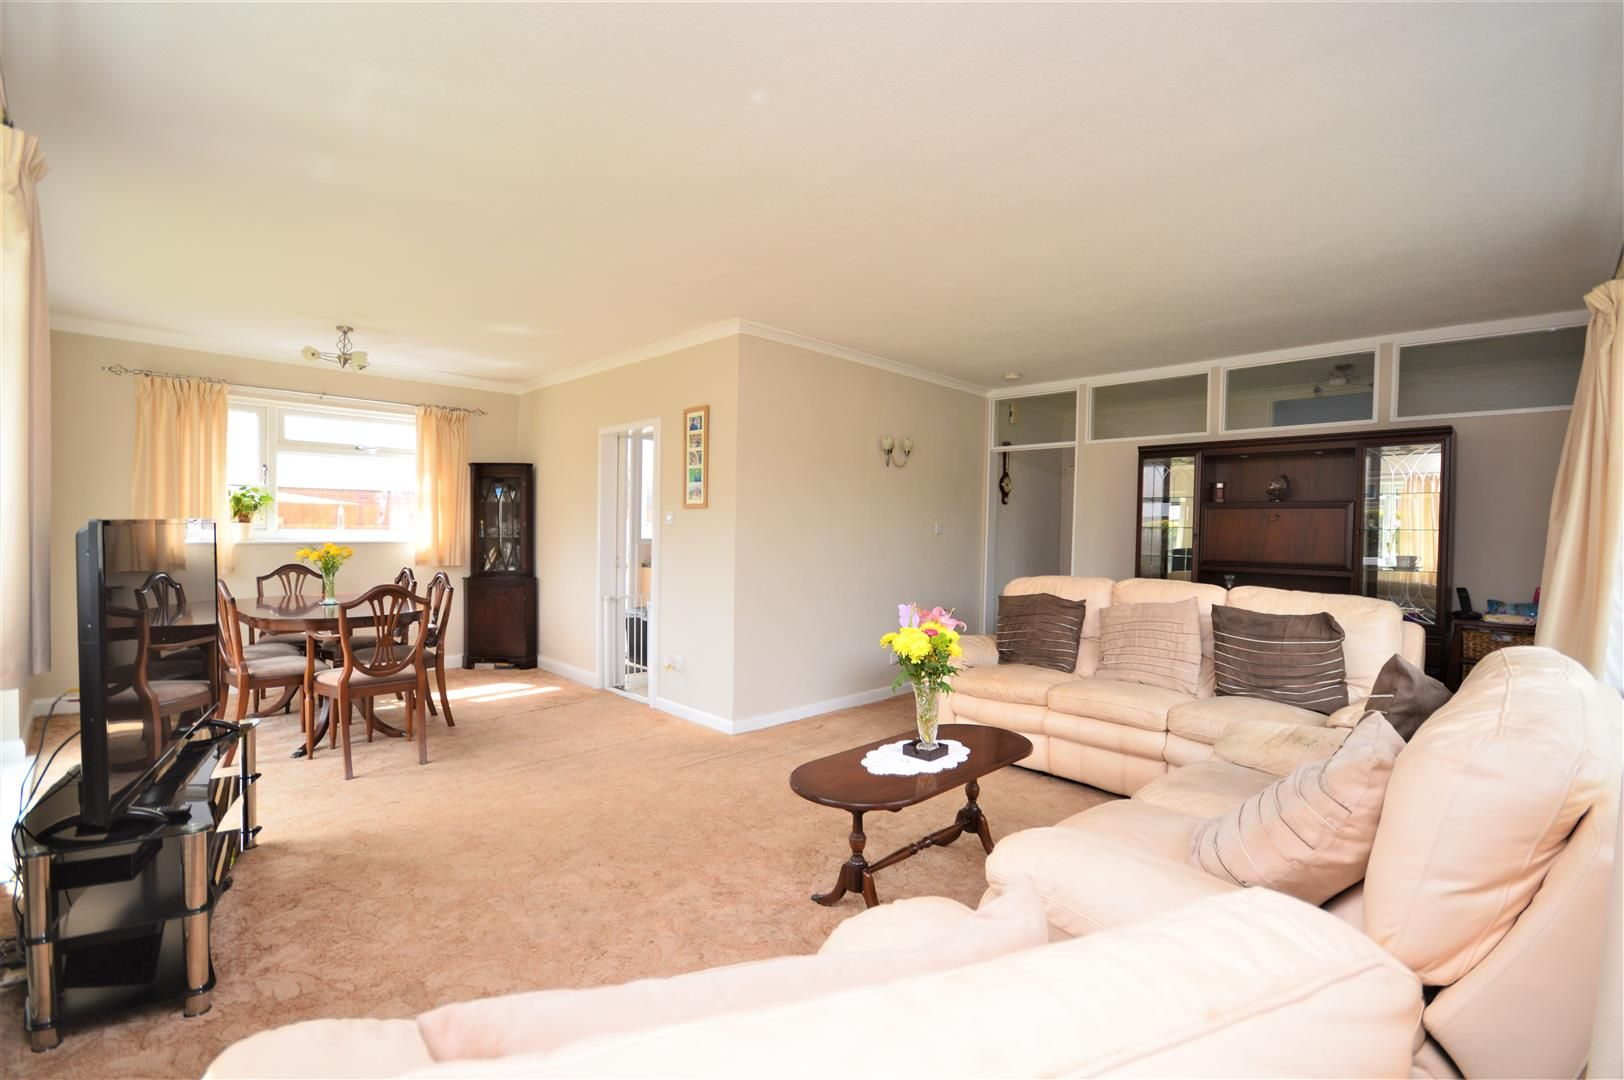 4 bed detached-bungalow for sale in Marden  - Property Image 4